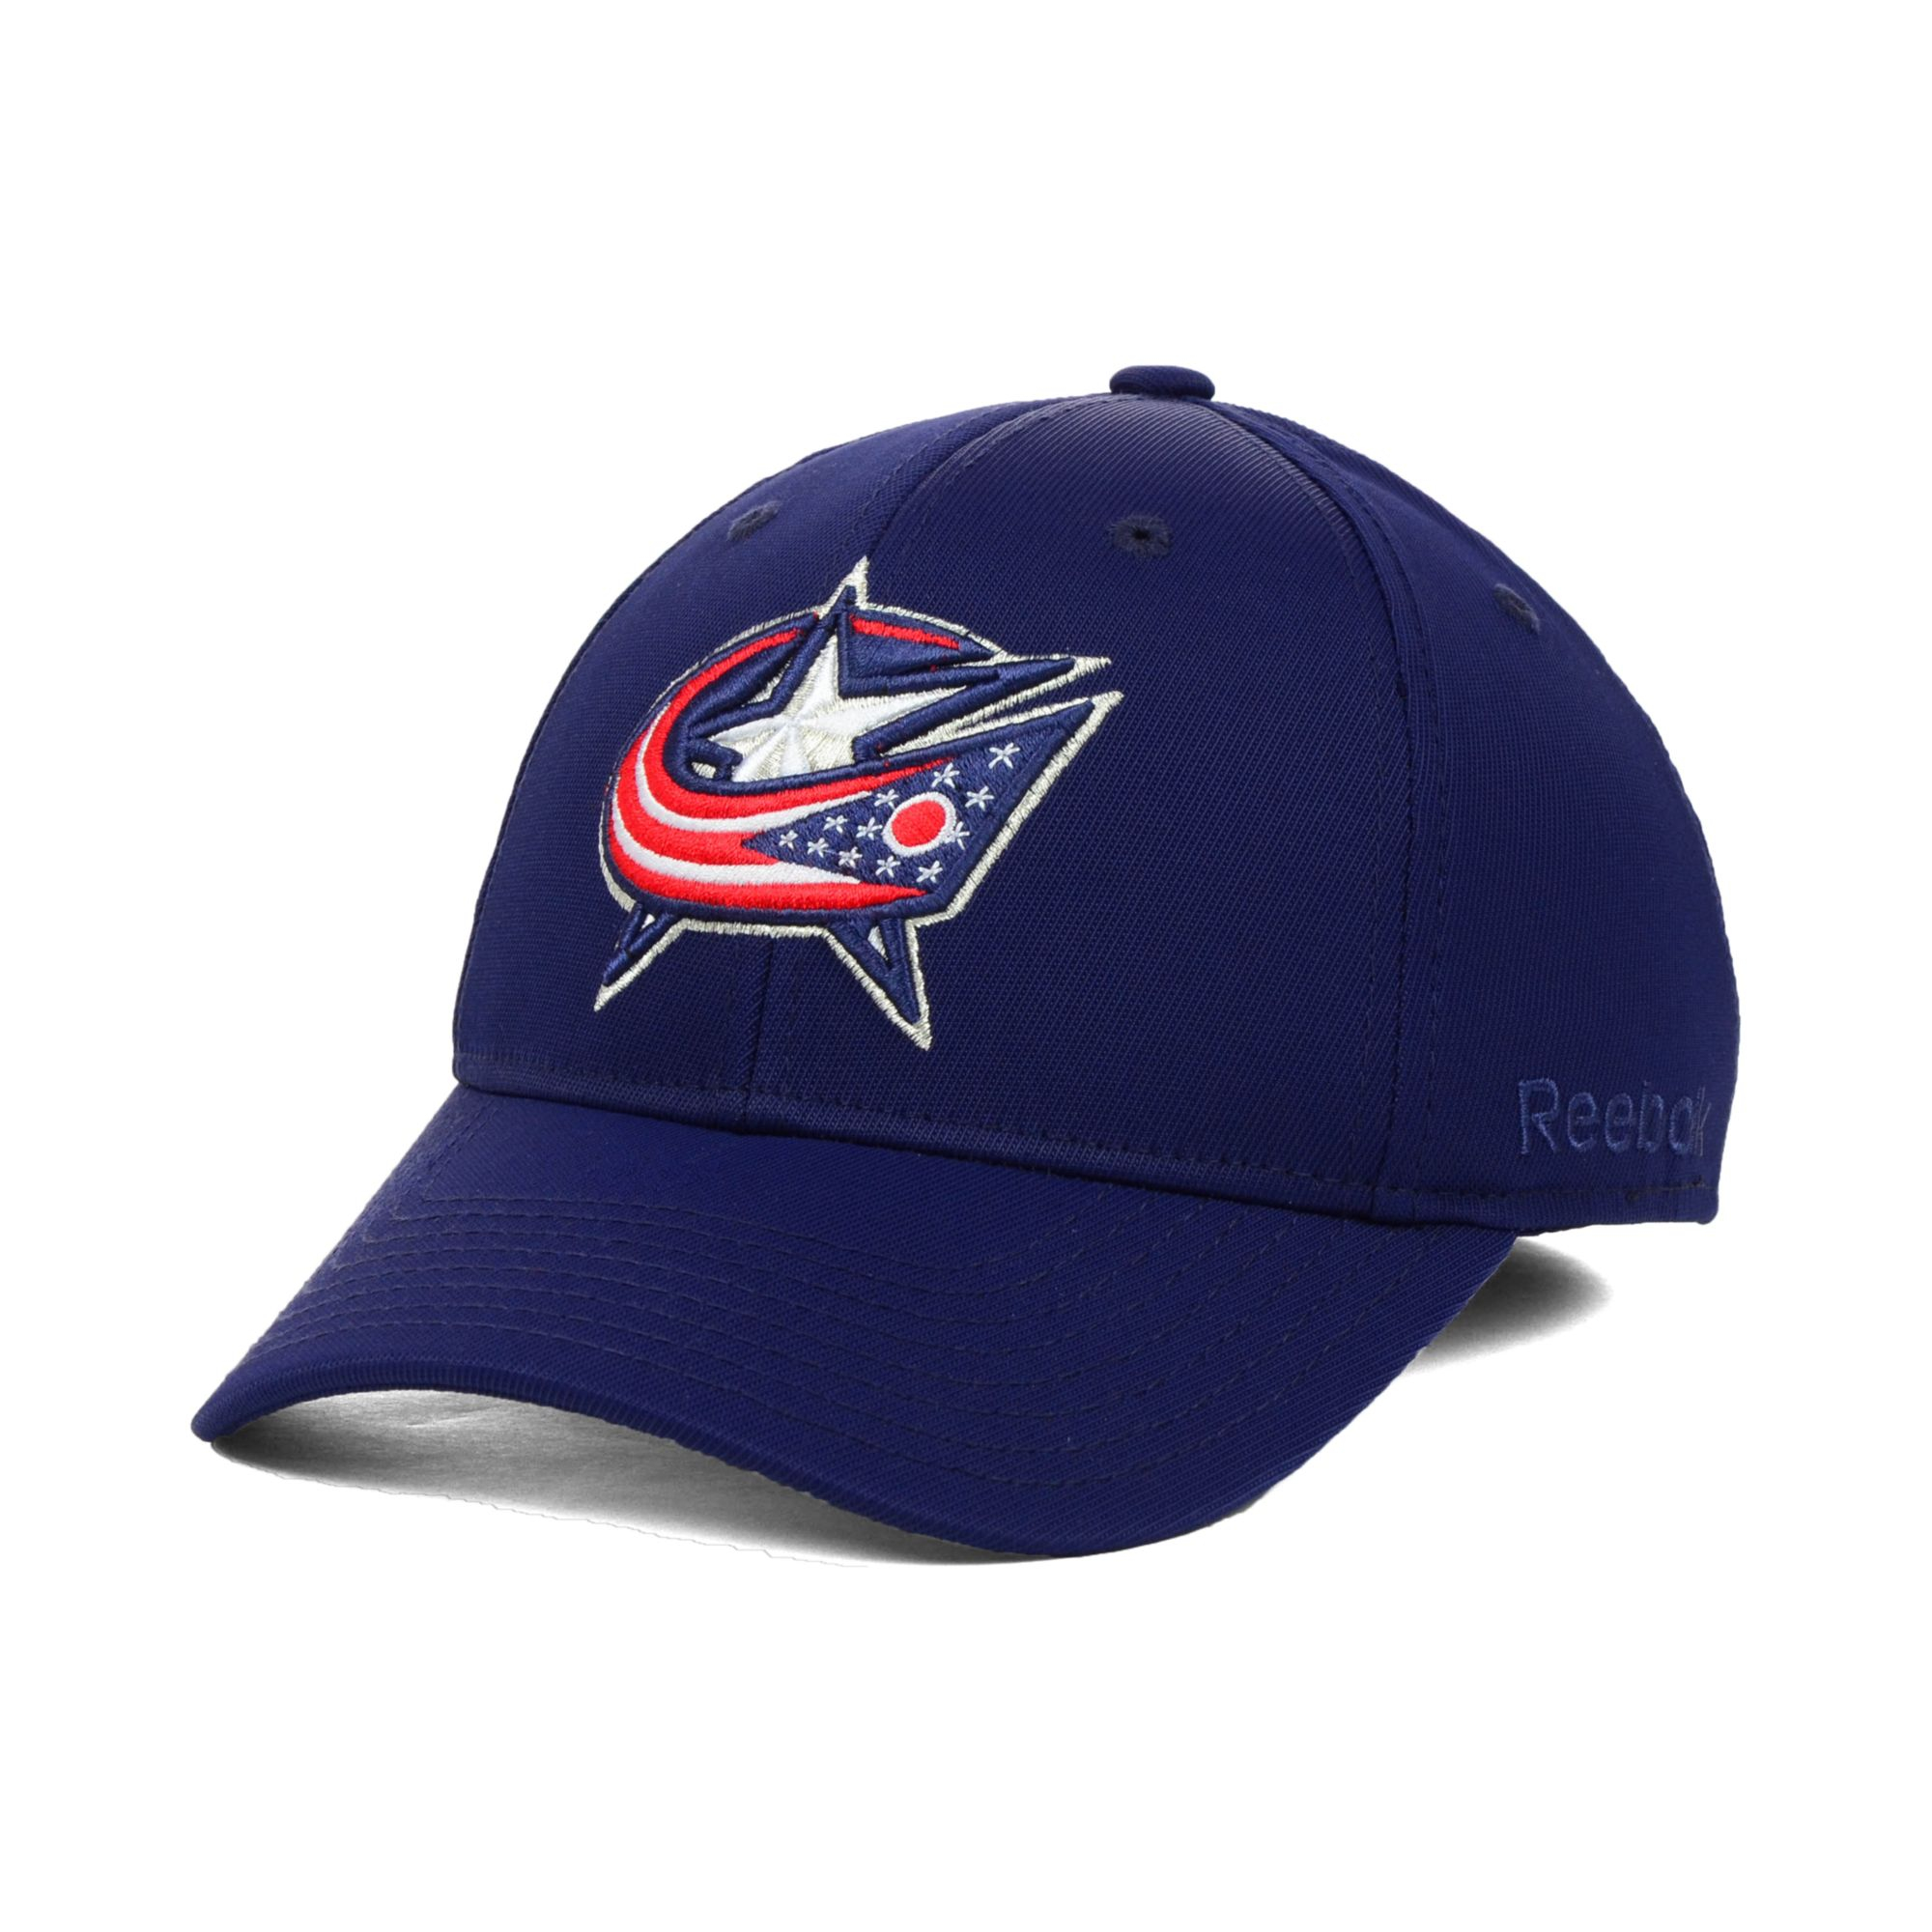 390a3e630ad Columbus Blue Jackets Hat Knit